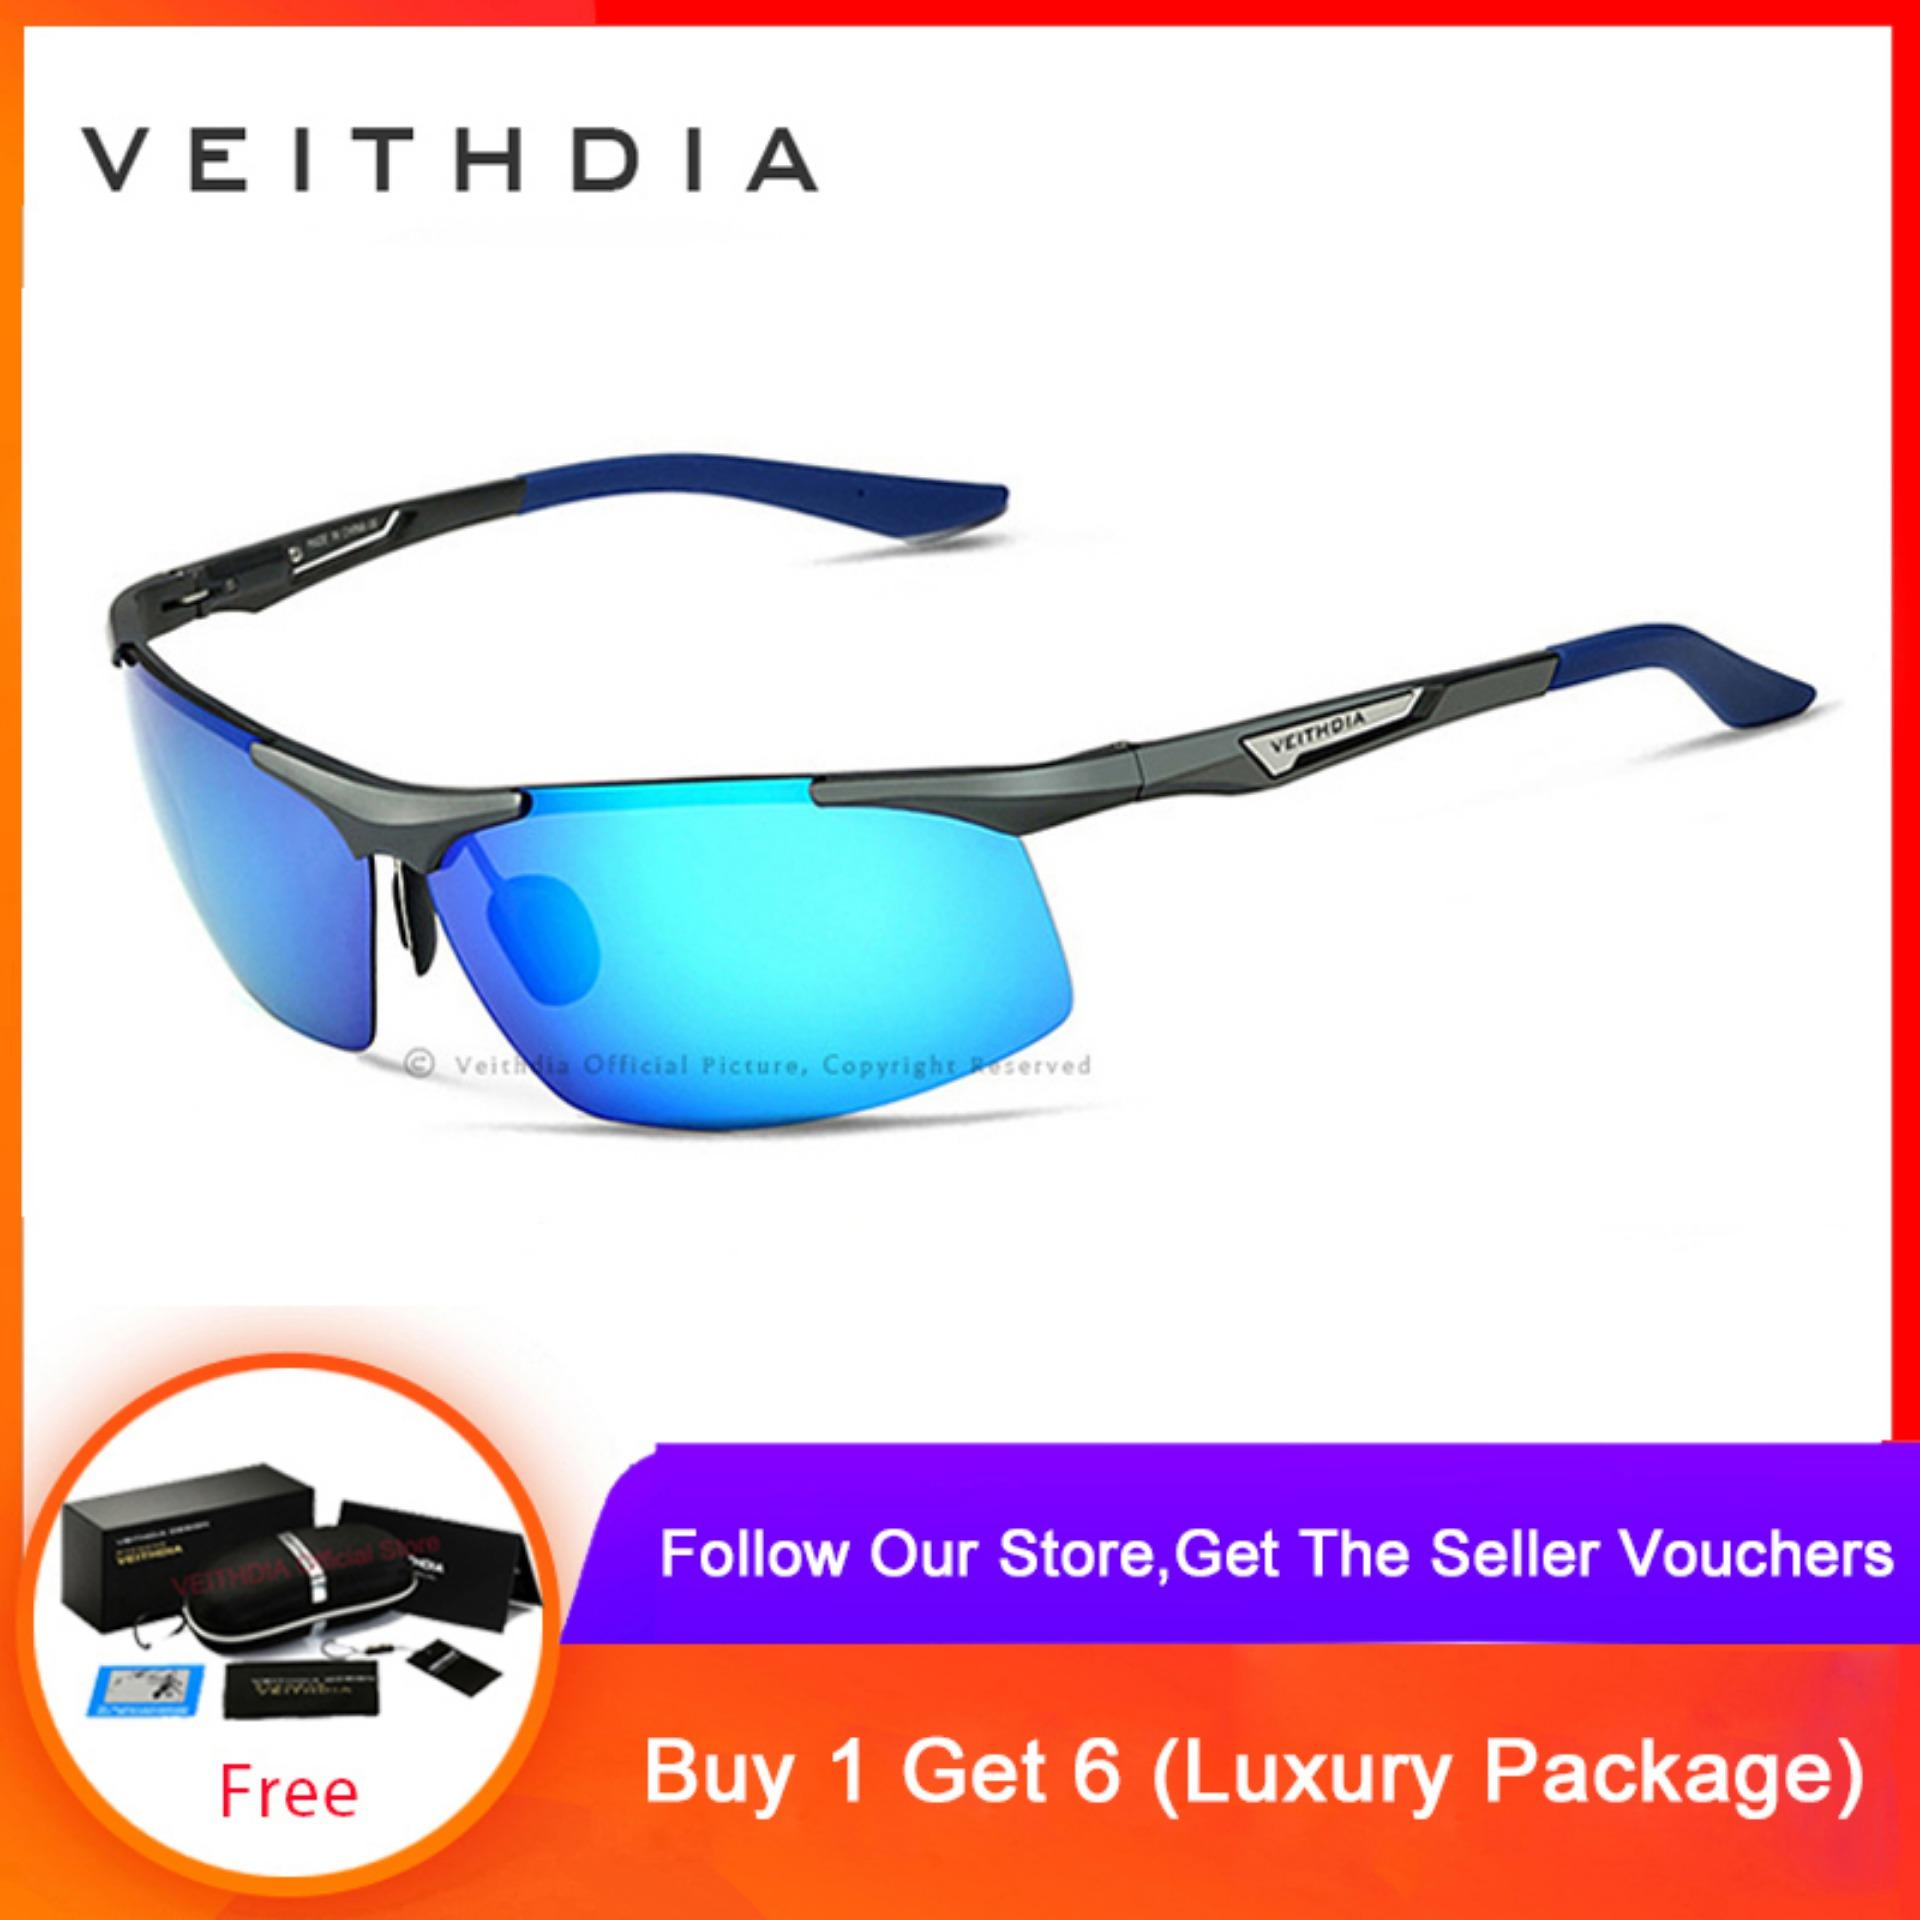 694e24fab0aa VEITHDIA Aluminum Magnesium Men's Sunglasses Polarized Men Glasses Eyewear  Men 6562